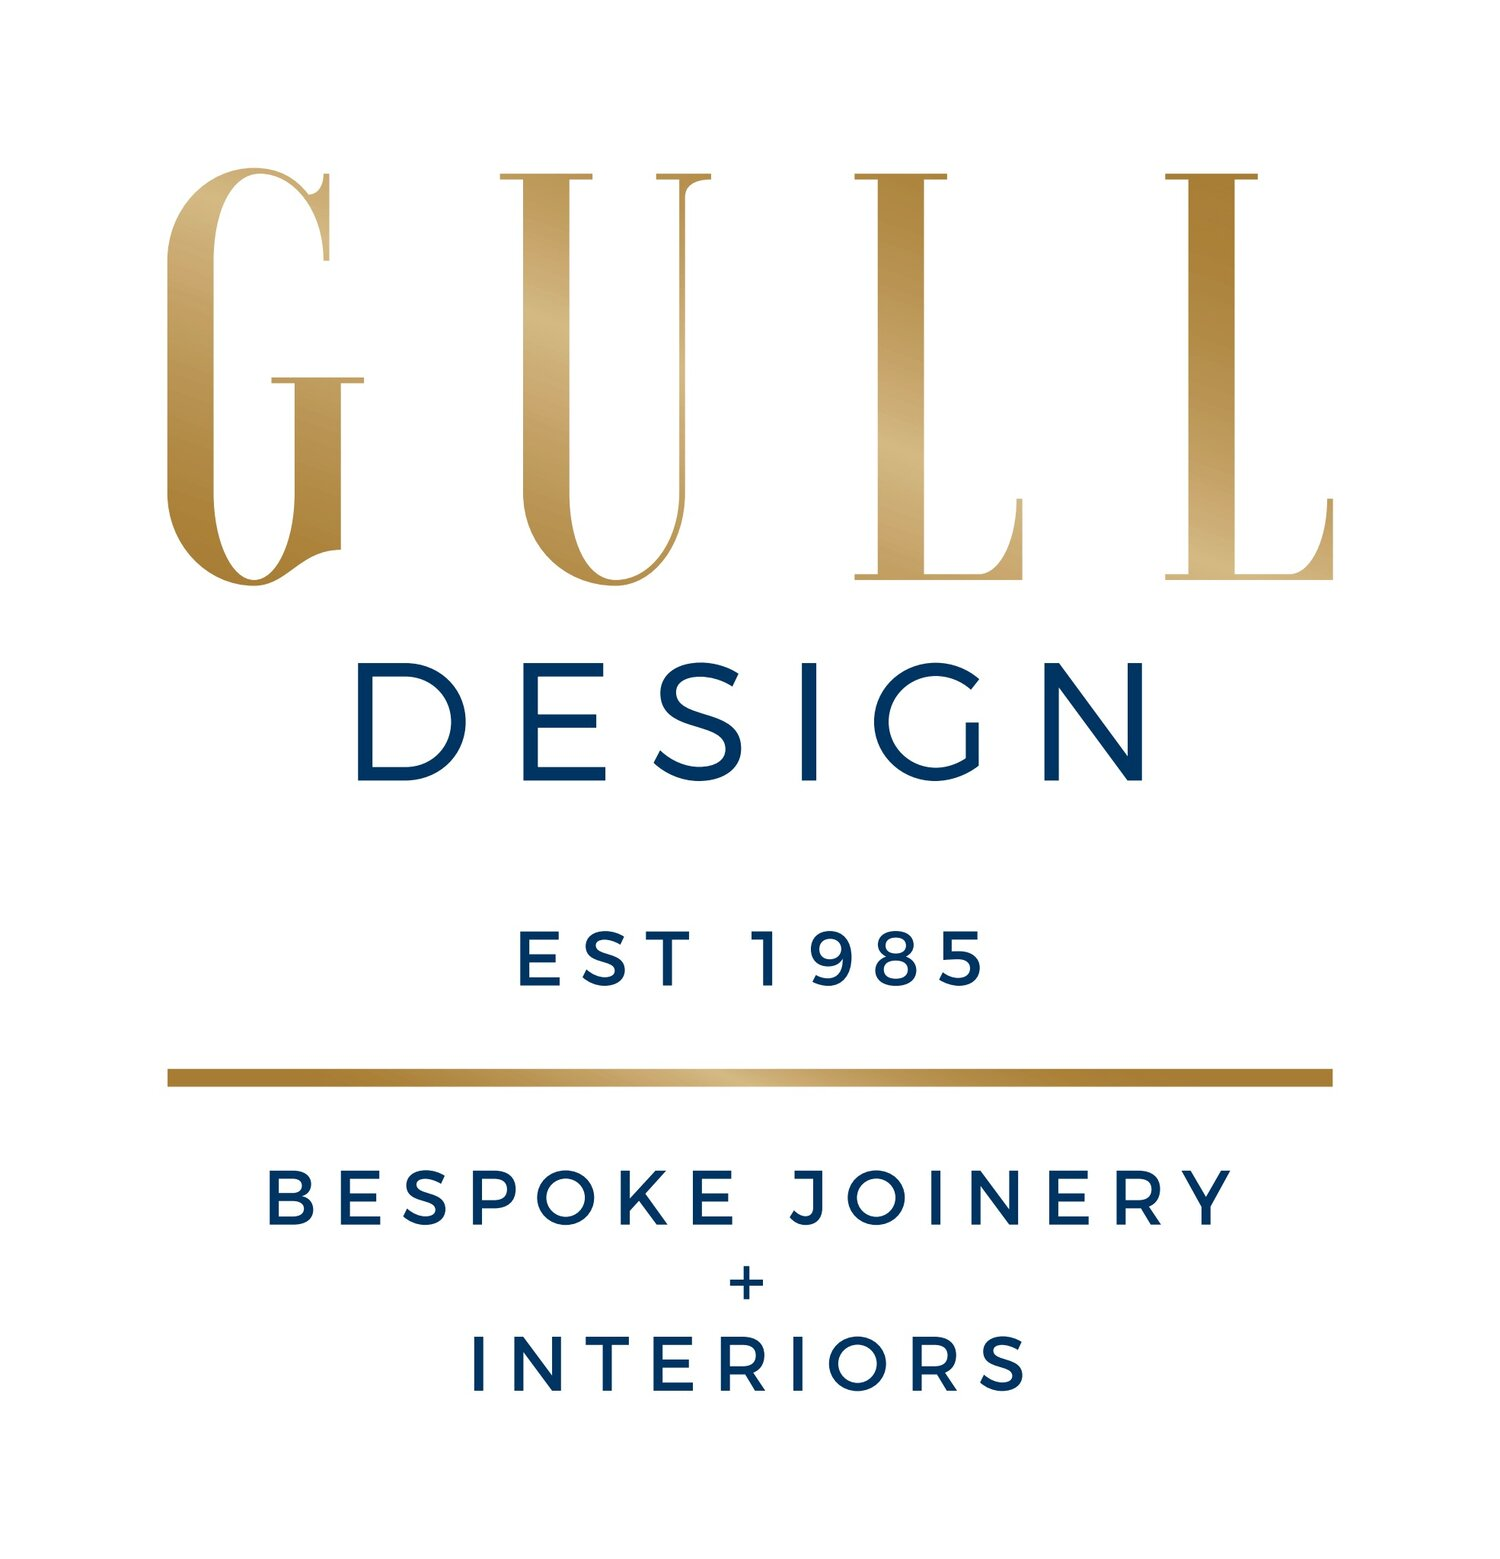 GULL DESIGN bespoke joinery + interiors